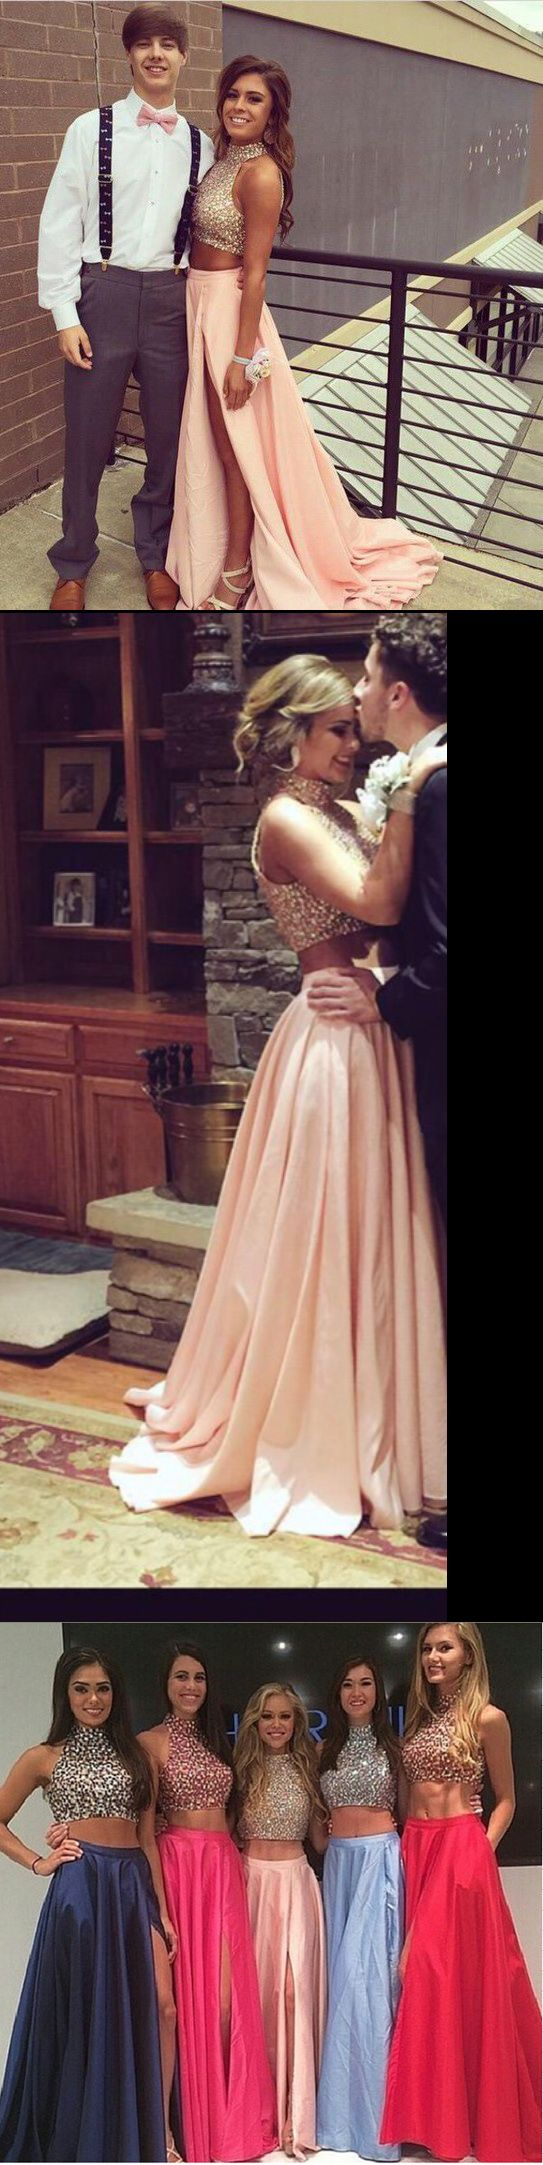 Fullsize Of Prom Dresses 2016